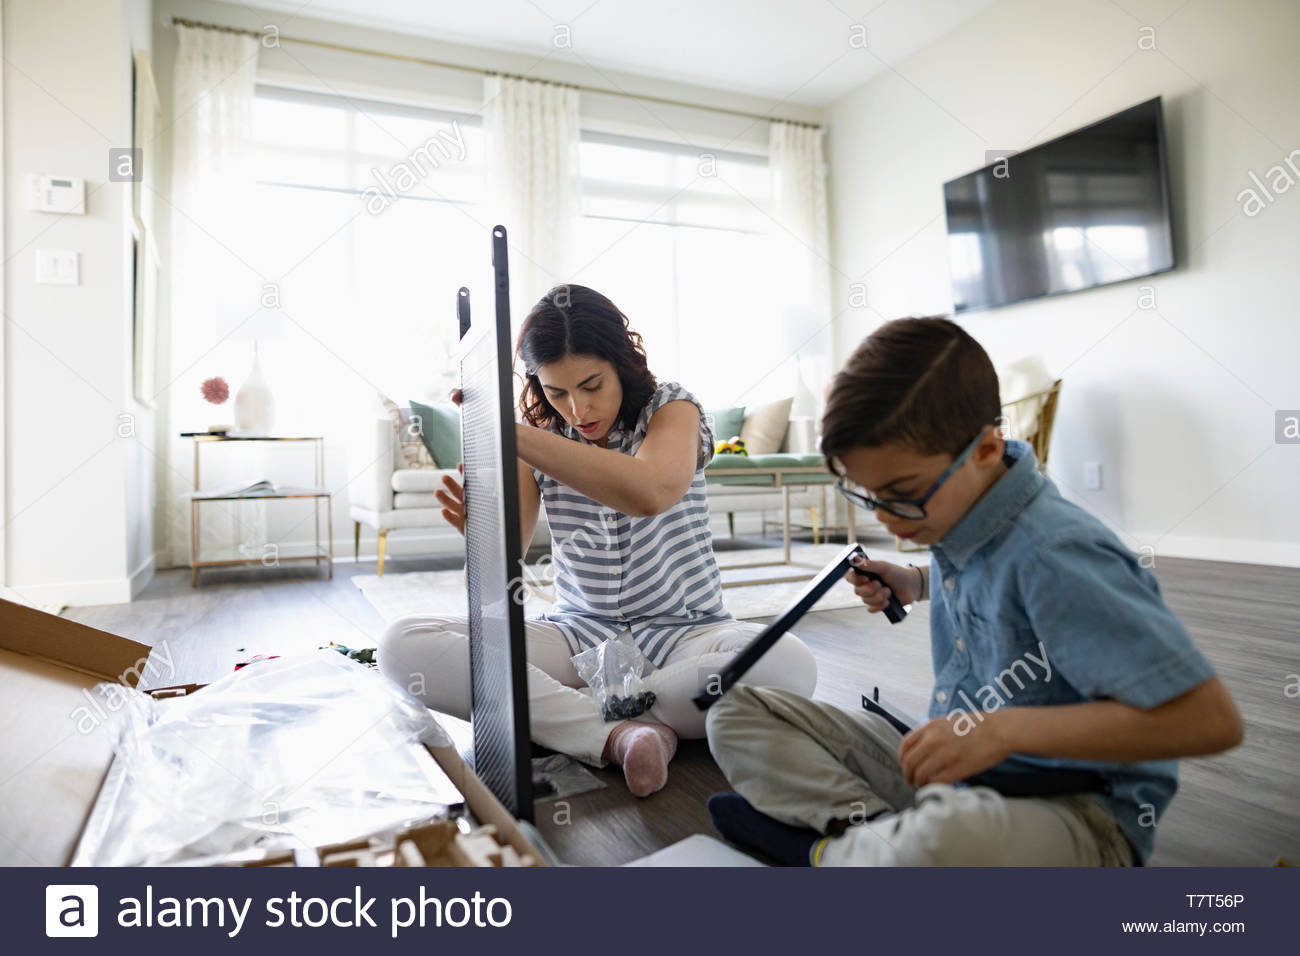 Mother and son assembling flat pack furniture - Stock Image